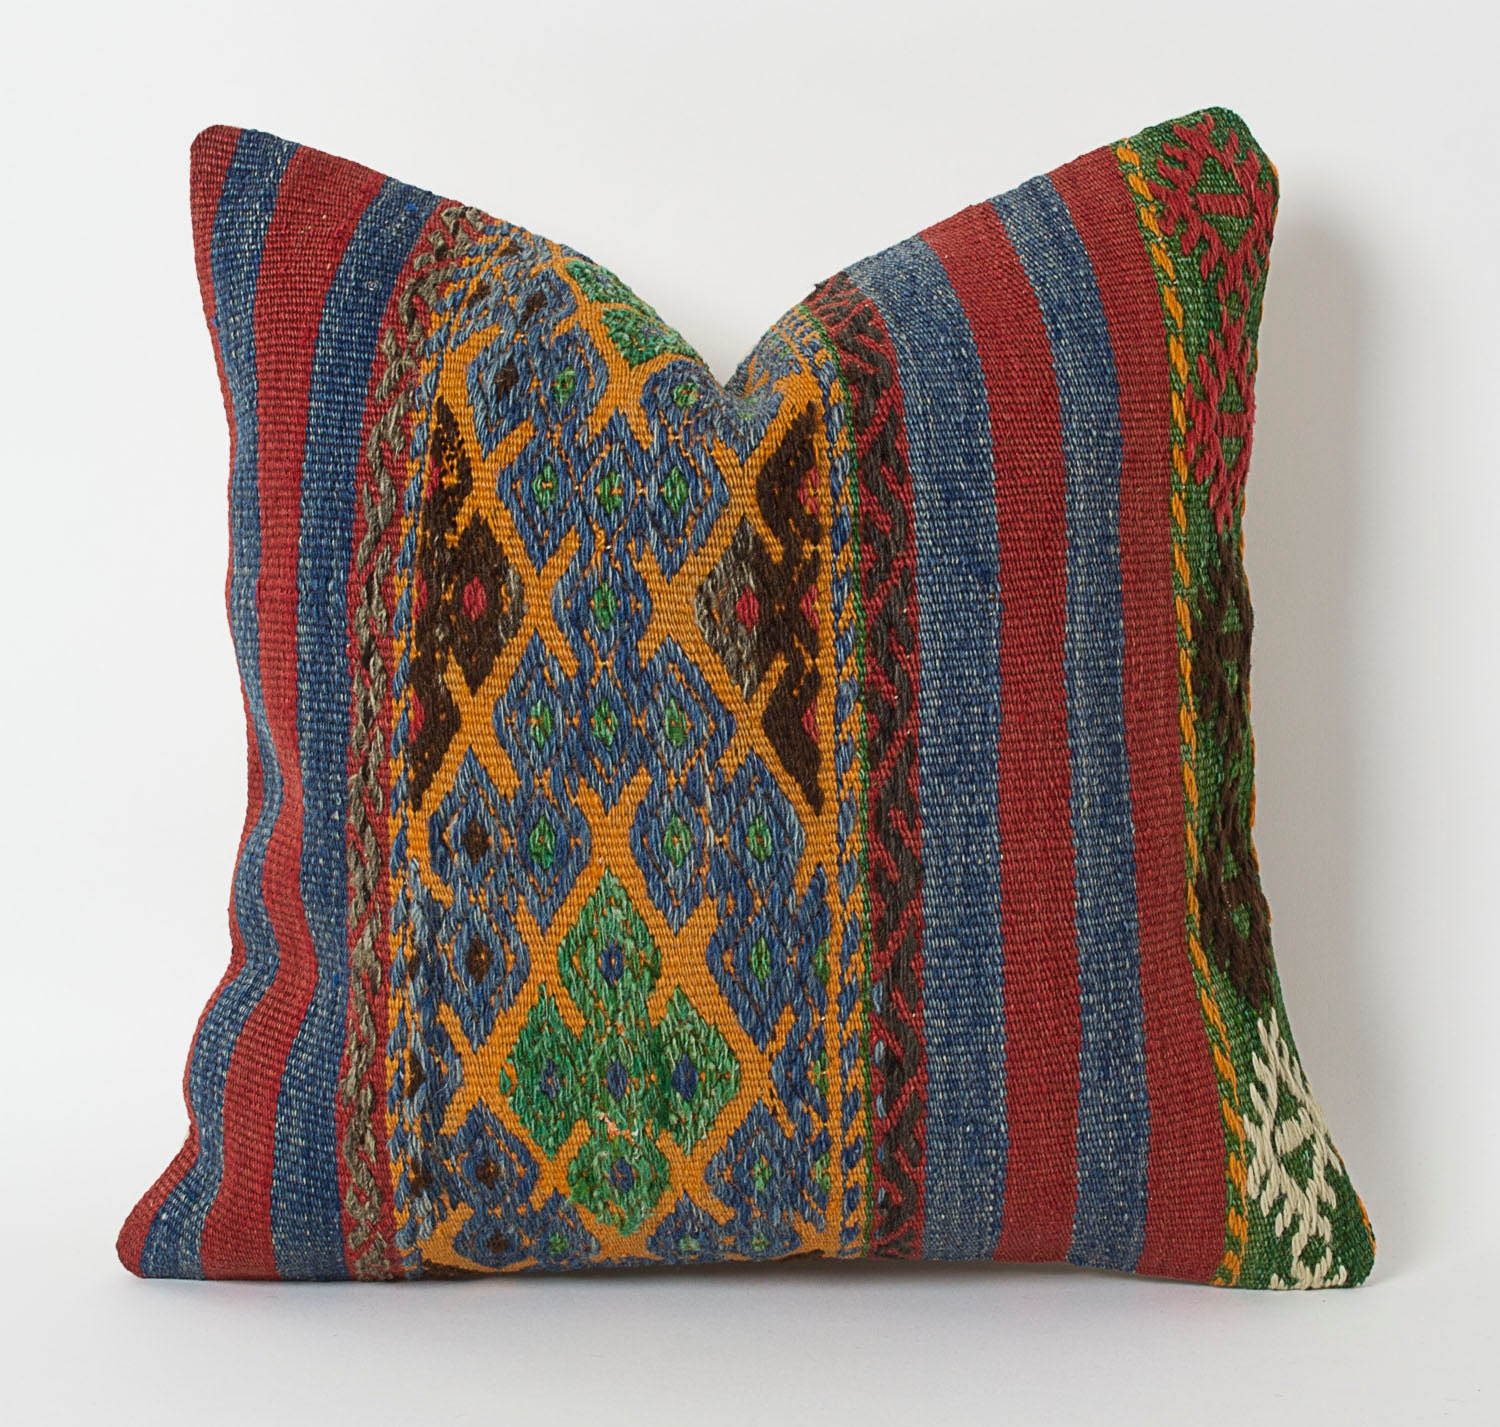 Decorative Pillows Kilim : Turkish Kilim Pillow Covers Kilim Throw Pillows Bohemian